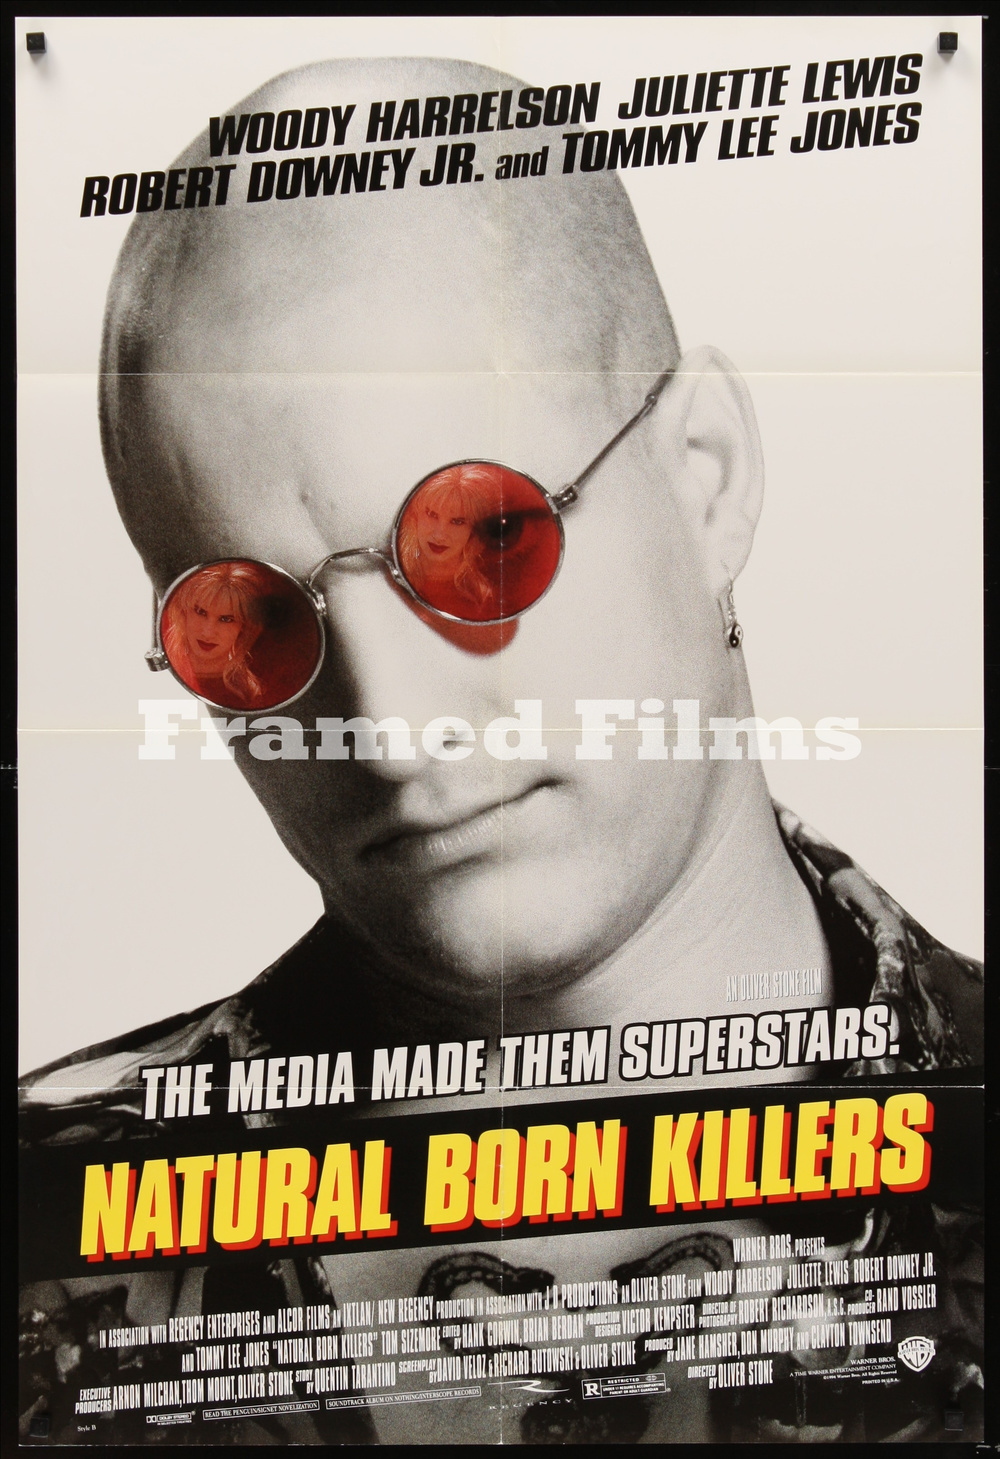 natural_born_killers_styleB_NZ03509_L.jpg